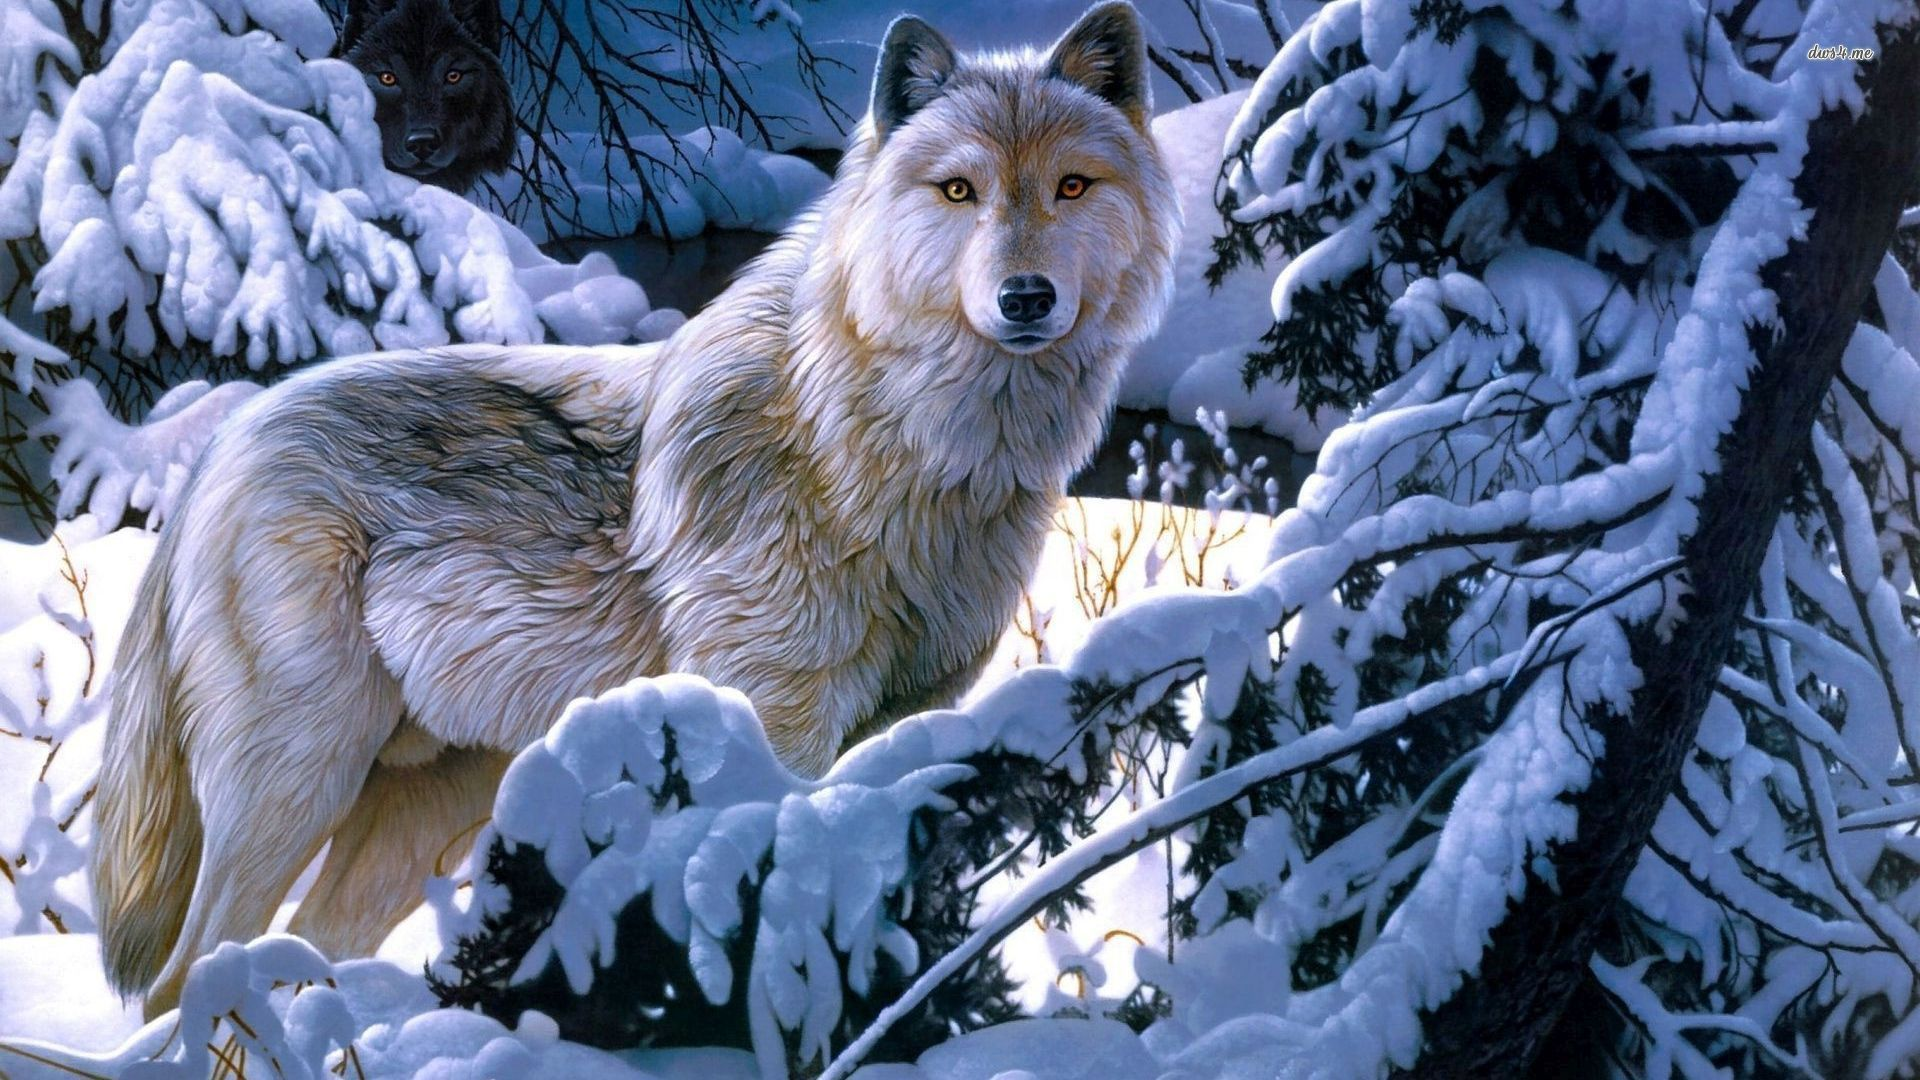 White Wolf Wallpaper For Mobile